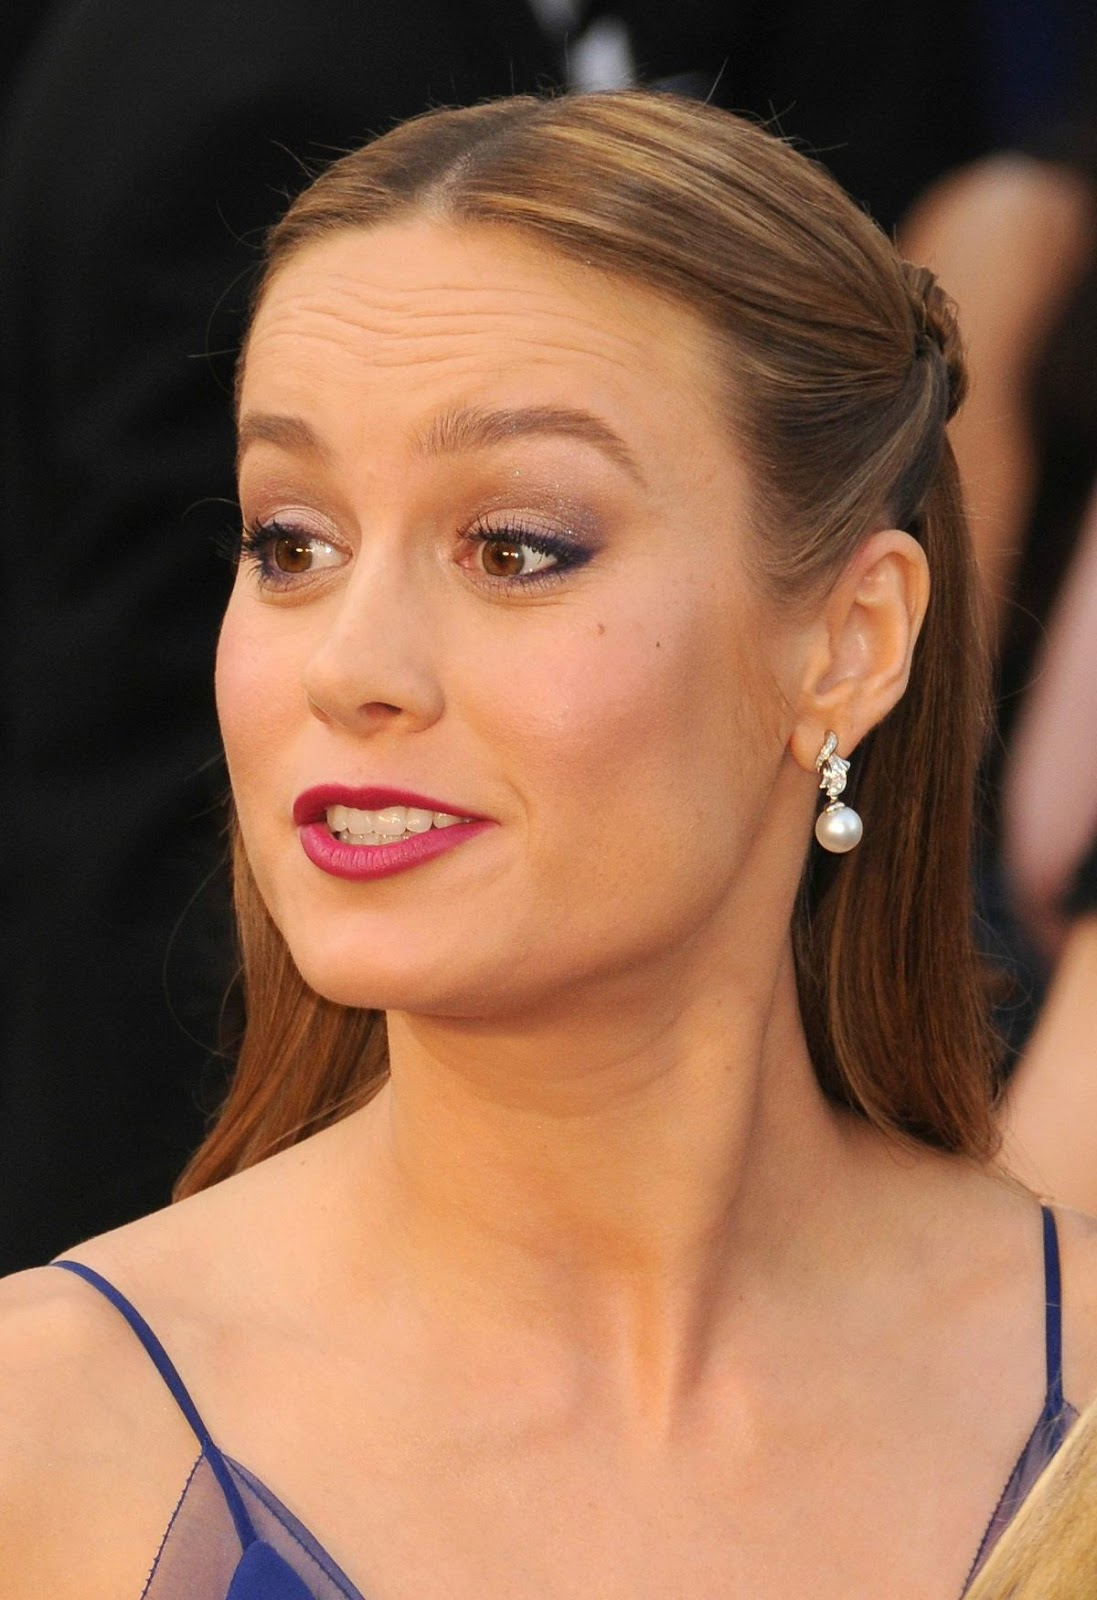 HQ Hot & Sexy Wallpapers of Marvel Comics Actress Brie Larson at 88th Annual Academy Awards in Hollywood